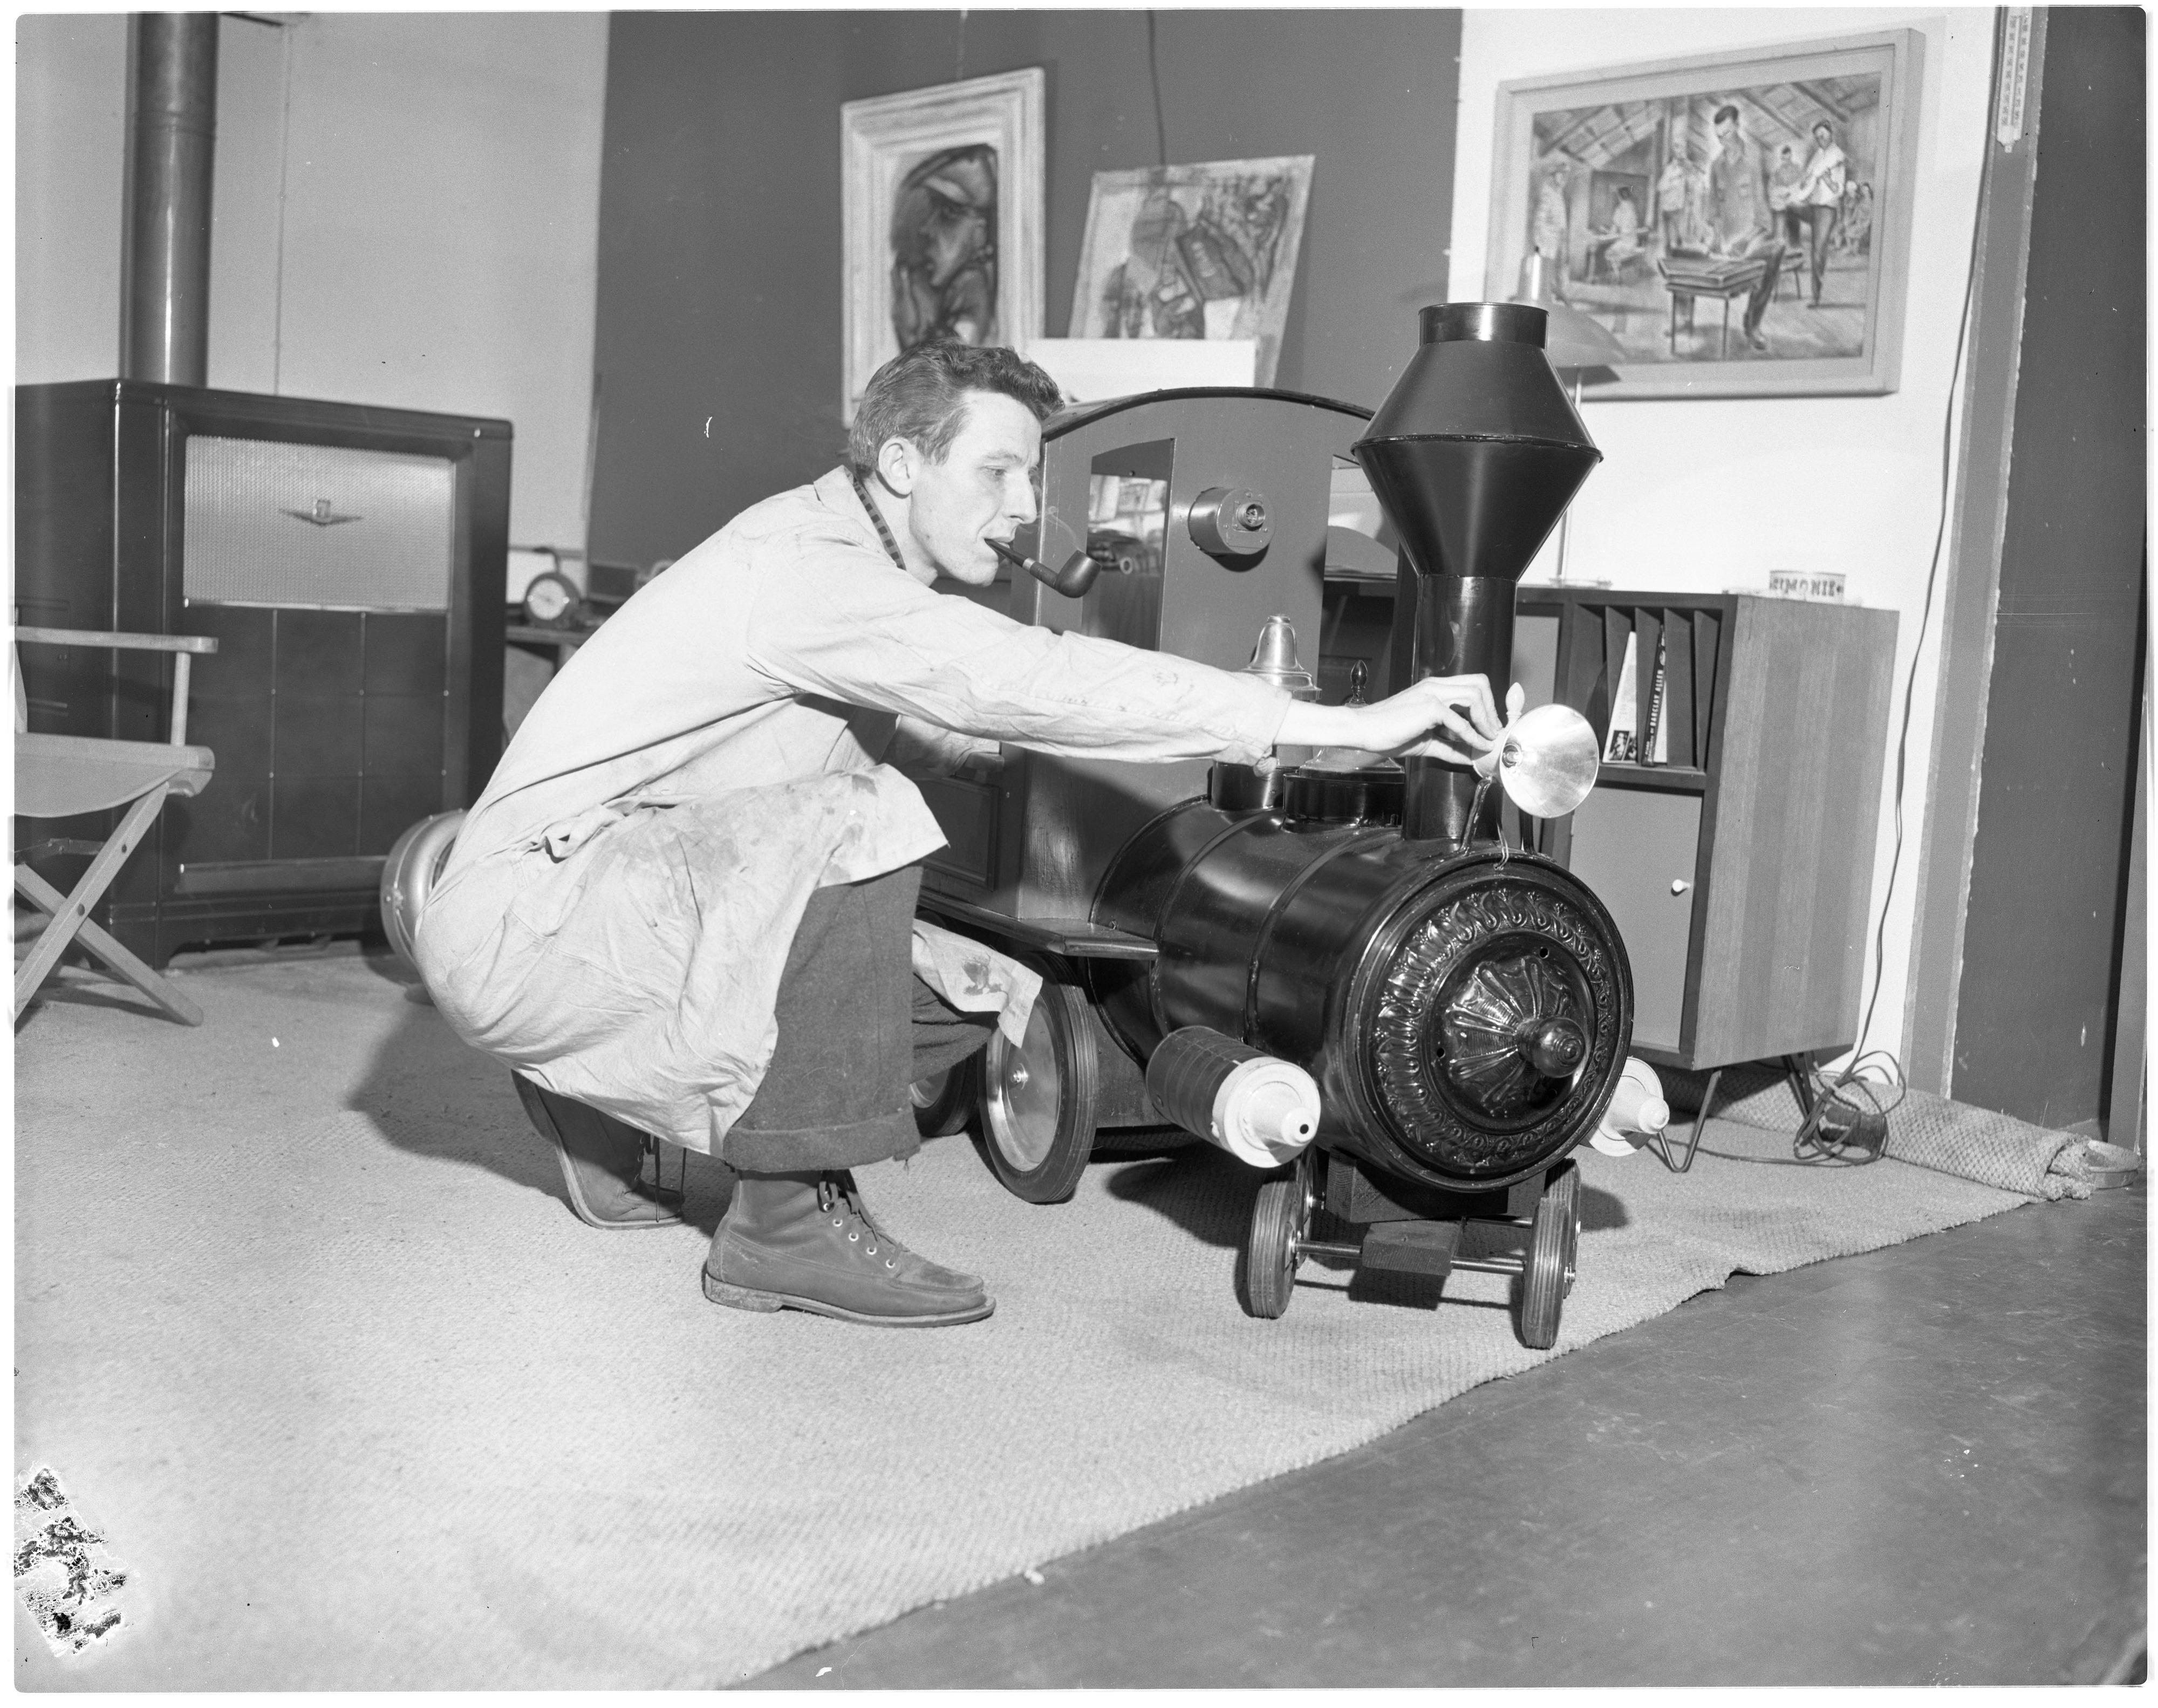 C. William Moss With His Handmade Locomotive, December 1955 image